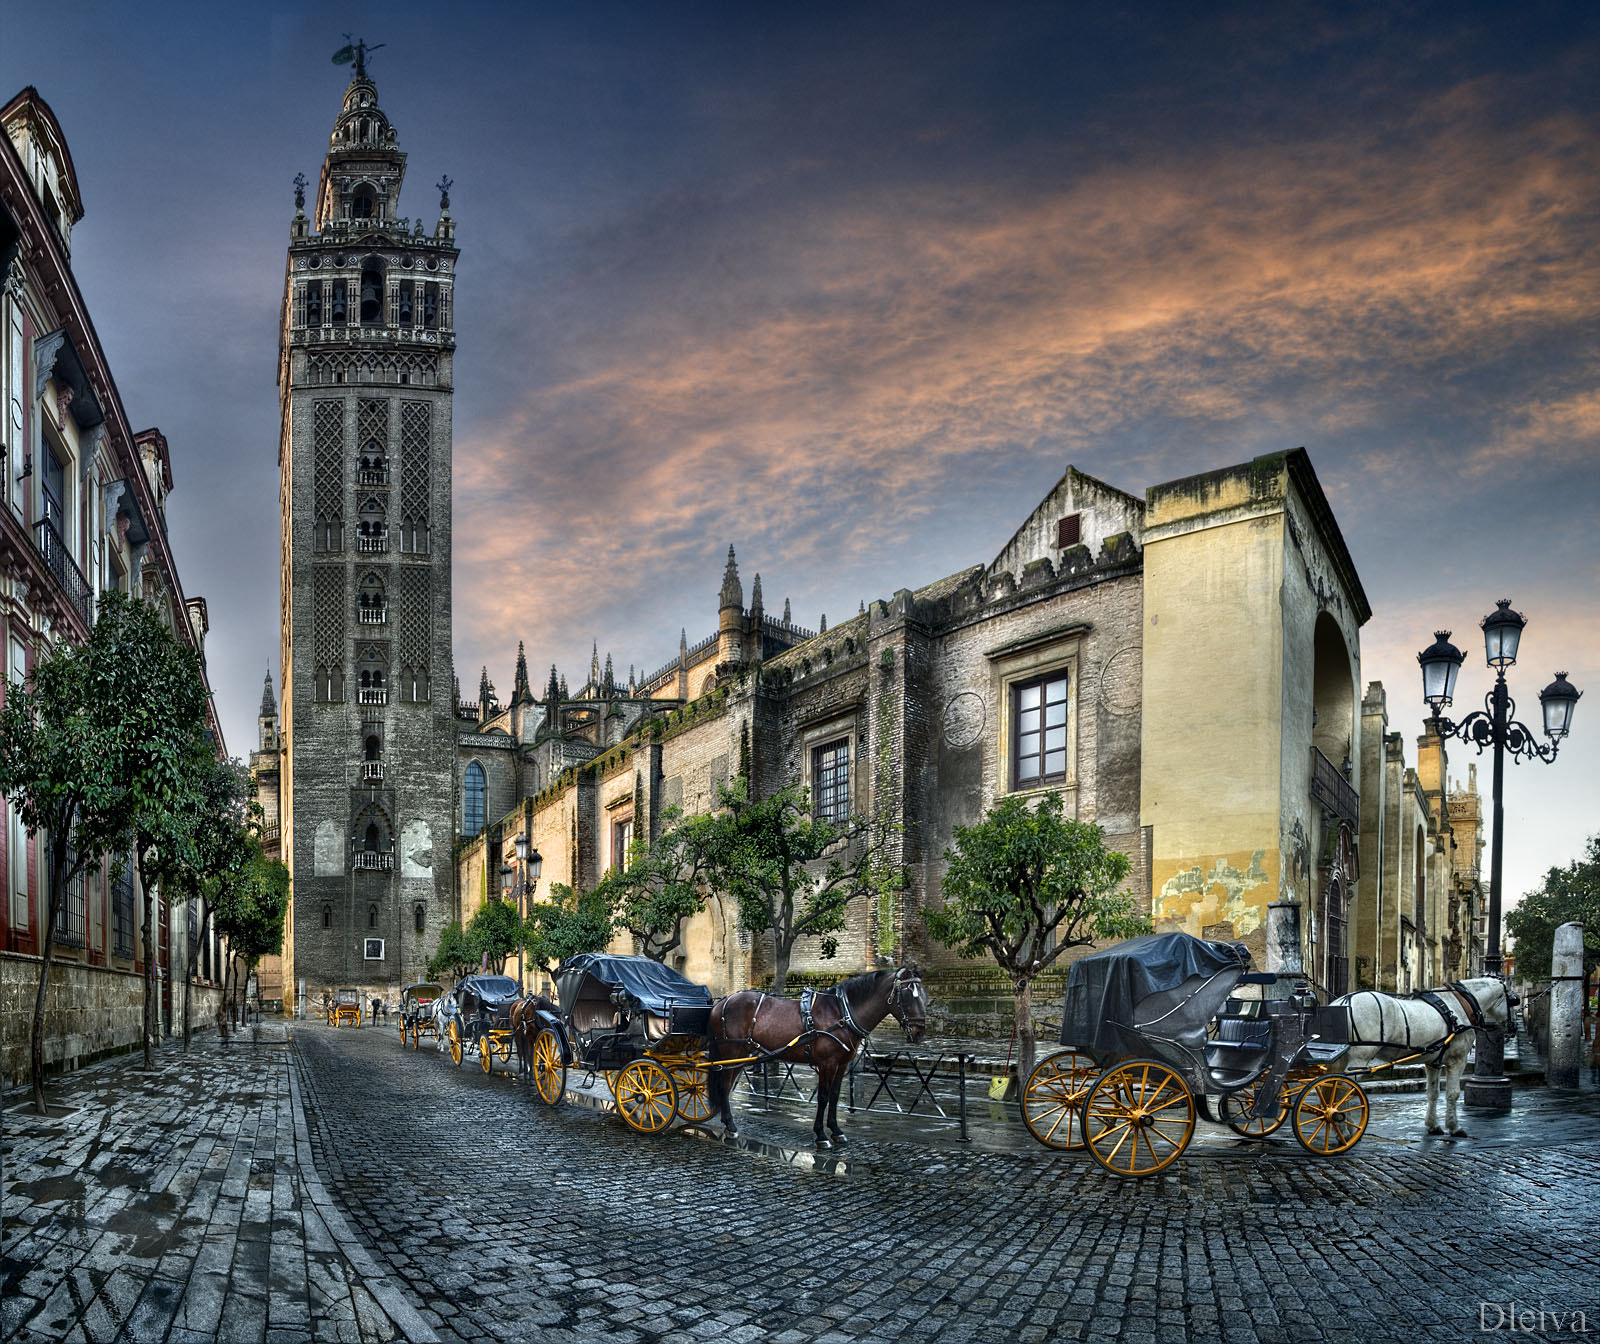 Photograph The Giralda Tower and Cathedral (Sevilla, Spain) by Domingo Leiva on 500px